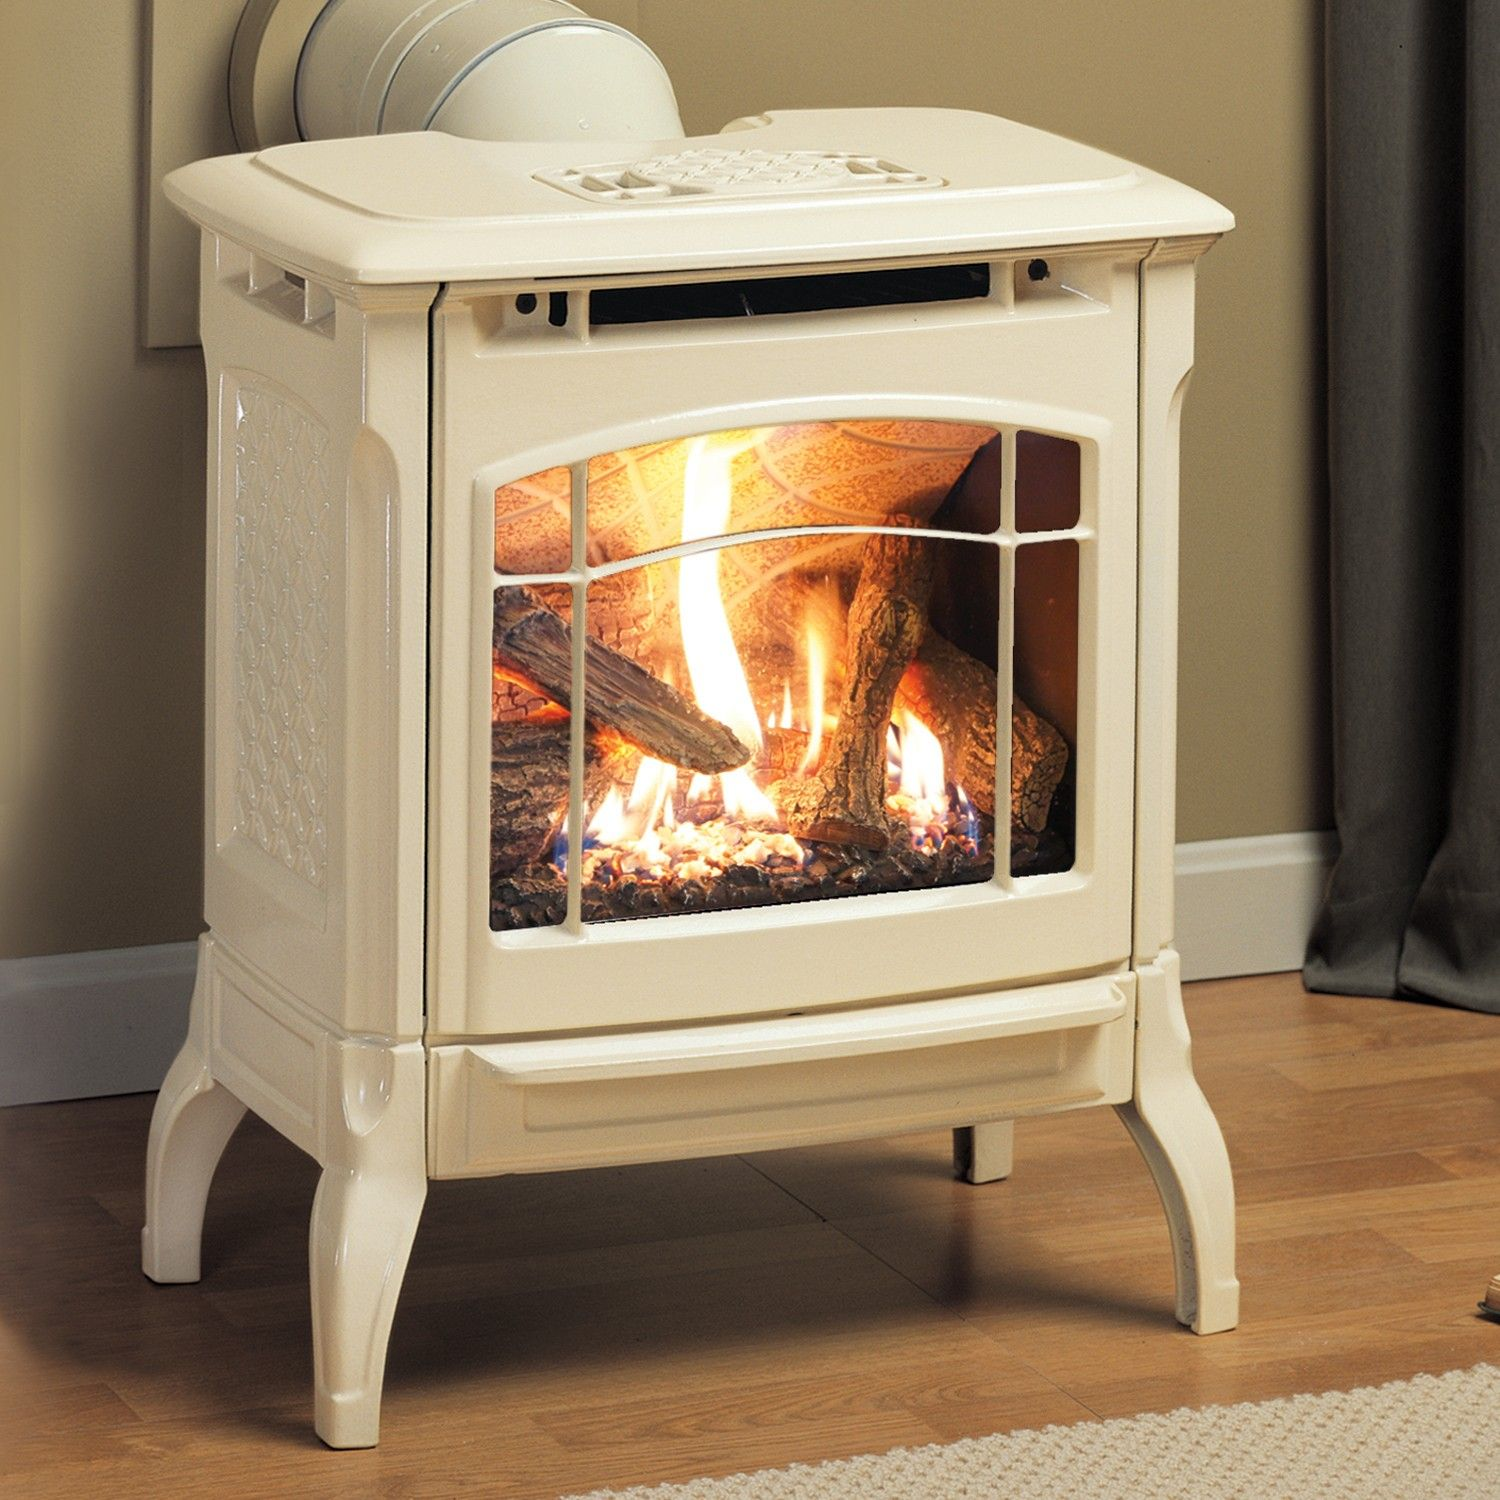 Small Gas Stove Fireplace Fireplace Design Ideas Small Gas Fireplace Small Gas Stove Wood Stove